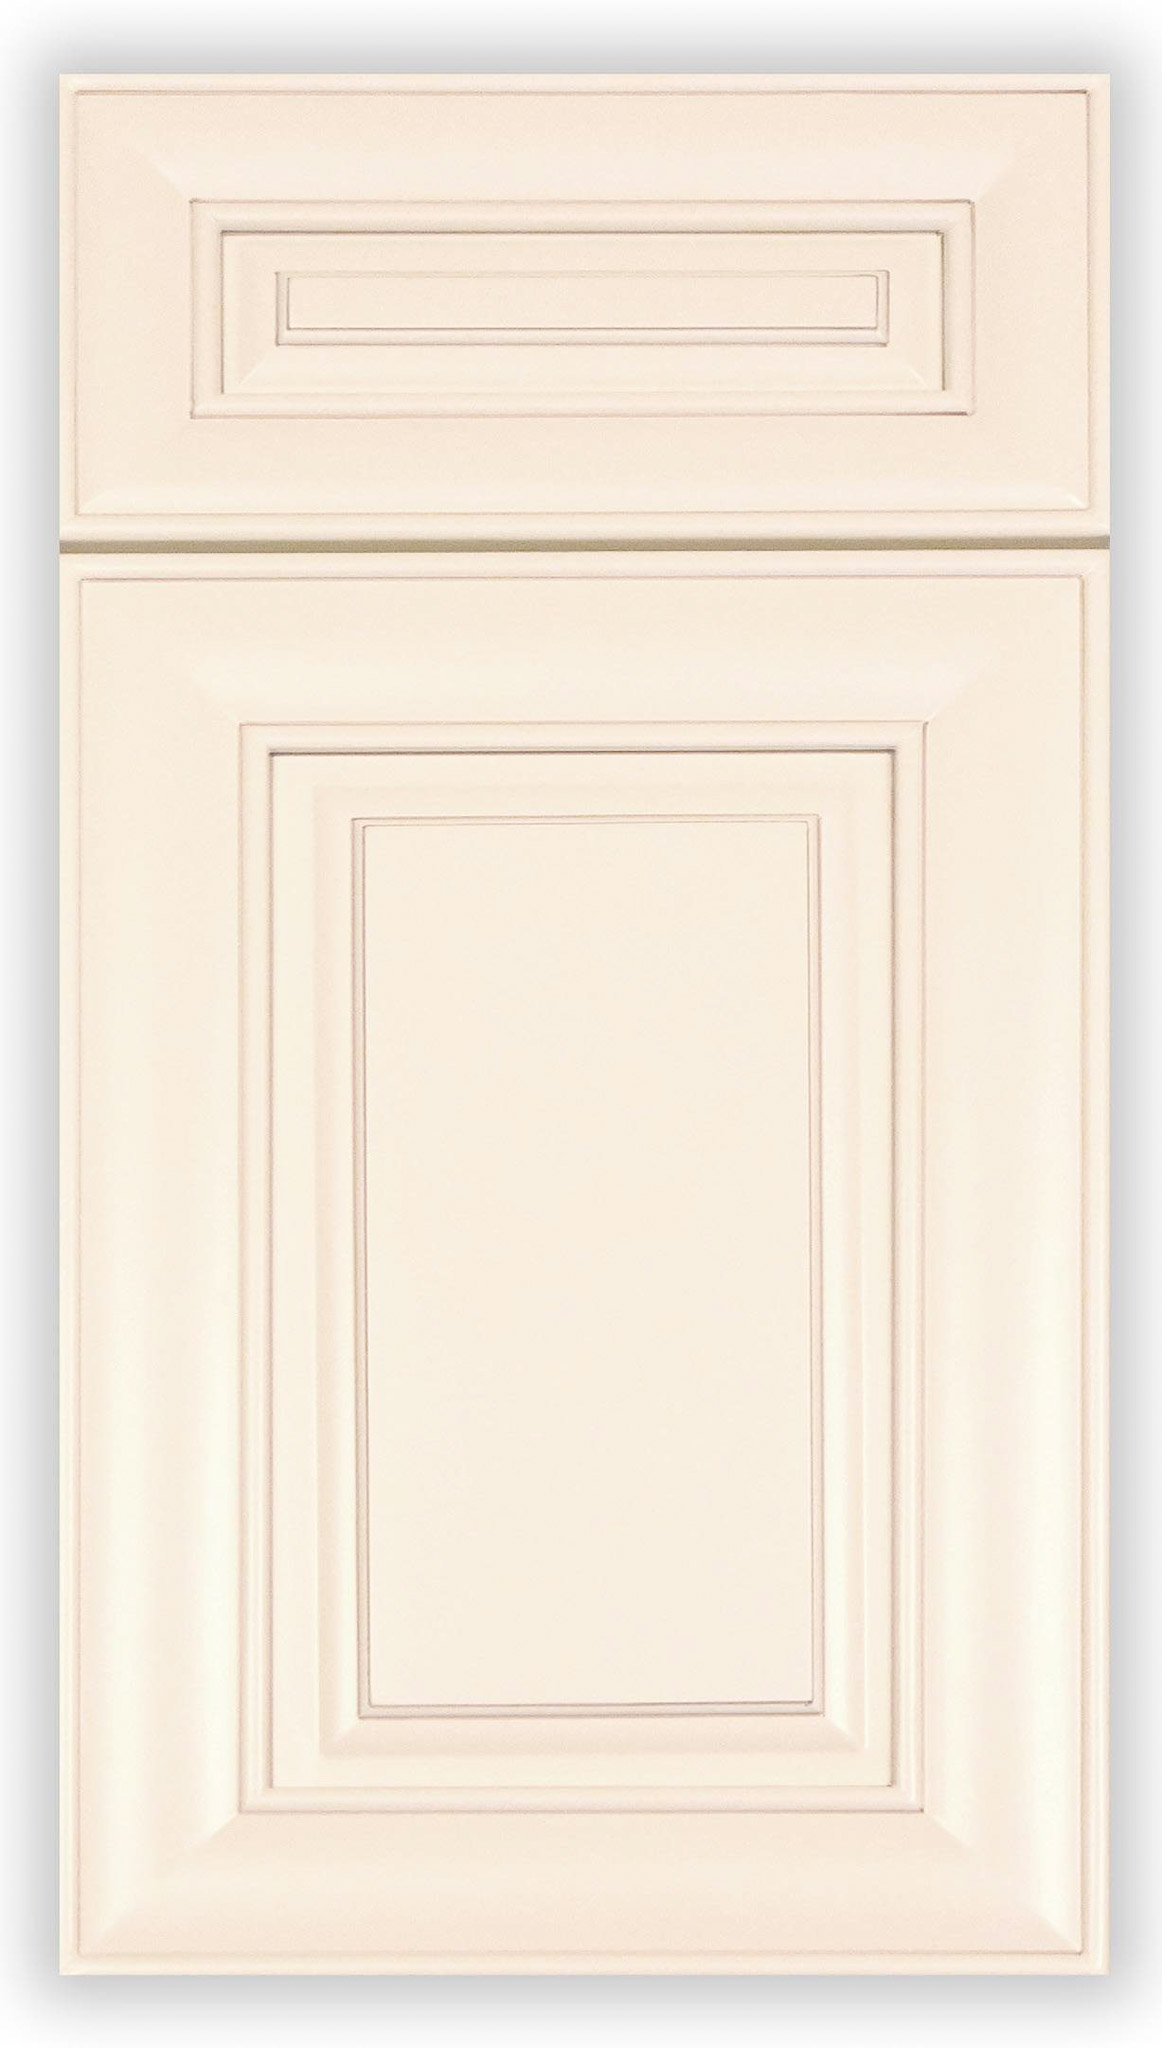 Manchest antique white roc cabinetry for Kitchen cabinets jimmy carter blvd